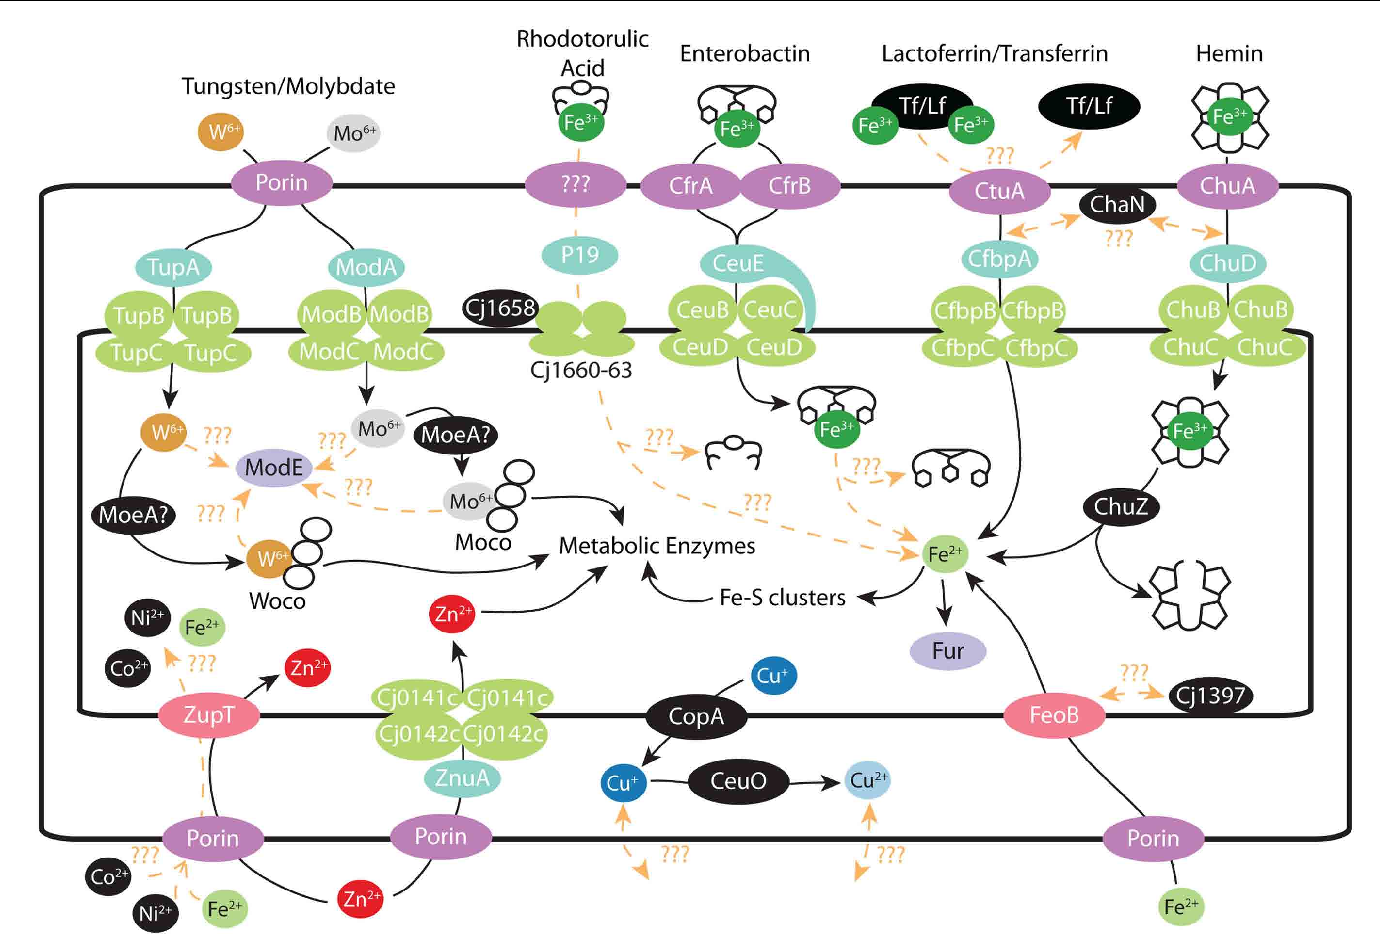 FIGURE 2 | Metal transport in C. jejuni : schematic of various metal transport systems present in C. jejuni. Where possible, proteins are colored by their function. Outer membrane proteins are denoted by dark purple, periplasmic proteins by turquoise, ABC transporters by green, periplasmic transporters by pink, and transcriptional regulators by light purple. Iron: ferric–rhodotorulic acid is imported into the periplasm though an unidentified outer membrane transporter and subsequent interactions with various proteins result in iron release and import into the cytosol. Ferric–enterobactin is imported through either CfrA/CfrB and enters the cytosol via the CeuBCDE system. The ferric–enterobactin is subsequently hydrolyzed by an unidentified protein. Lactoferrin/Transferrin iron uptake is accomplished though CtuA and released iron is then transported thought the CfbpABC system into the cytosol. Heme is imported through the outer membrane by ChuA and transported into the cytosol via the ChuBCD system. Iron release is accomplished by ChuZ hydrolyzing the porphyrin ring. Iron imported as ferrous ions are transported by the high affinity FeoB